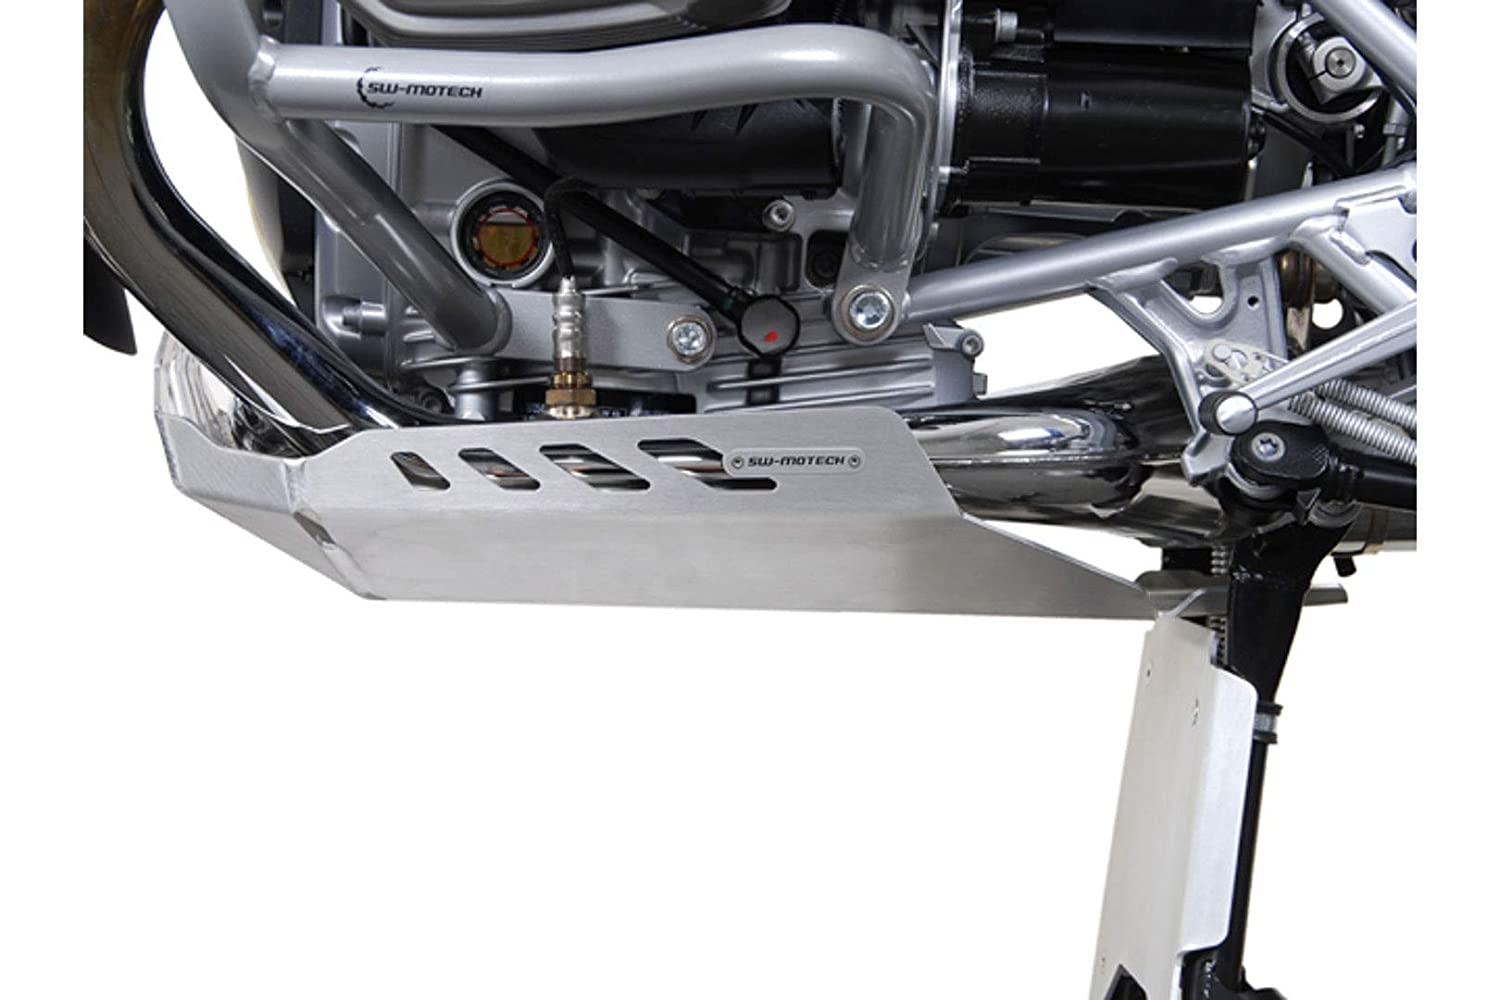 SW-MOTECH Aluminum Engine Guard Skid Plate for BMW R1200GS 04-12 /& R1200GS Adventure 06-13 SW-MOTECH Bags-Connection MSS.07.706.10000//S